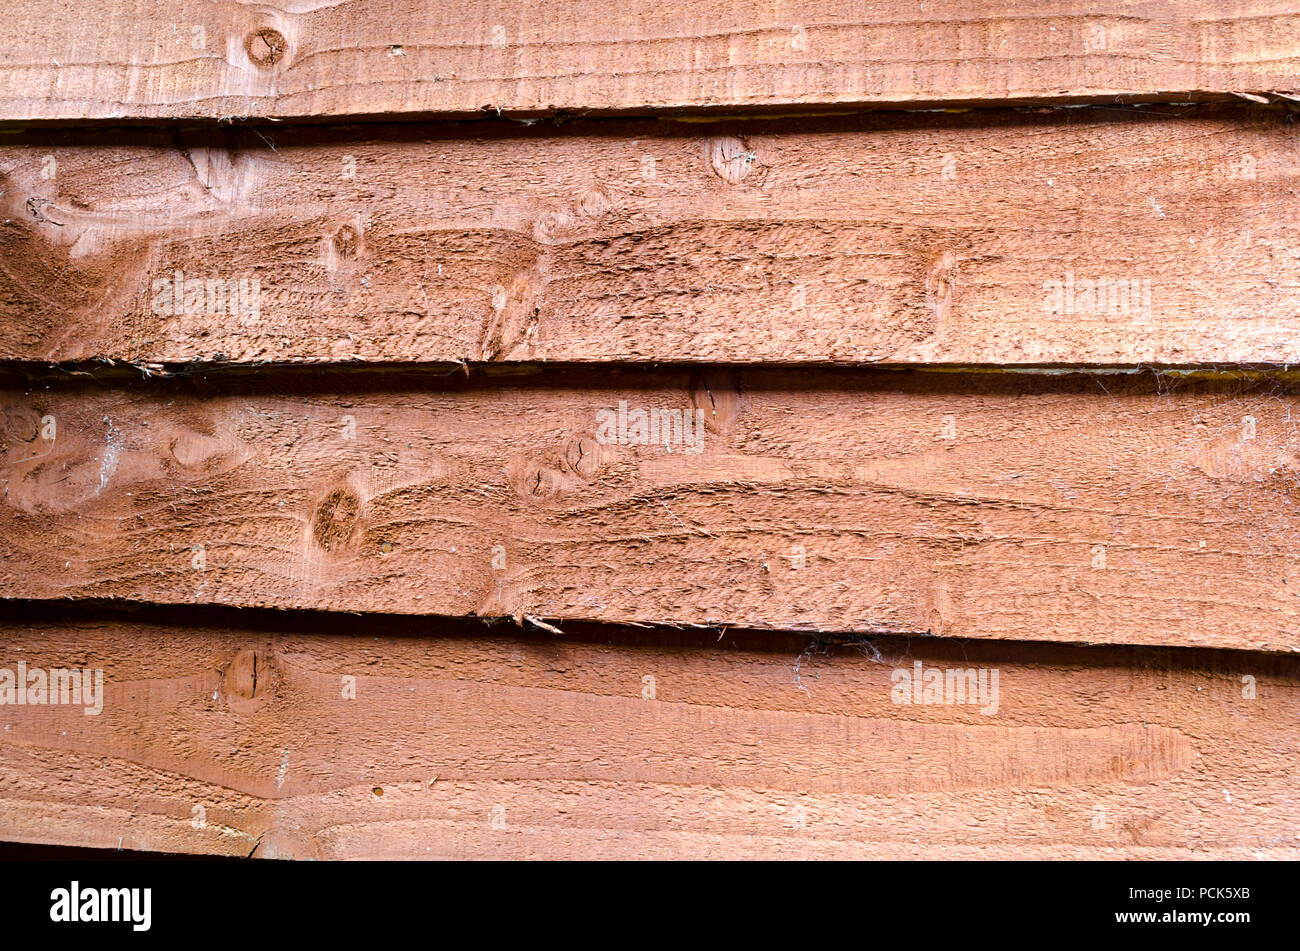 A Background of Brown Overlap Timber - Stock Image